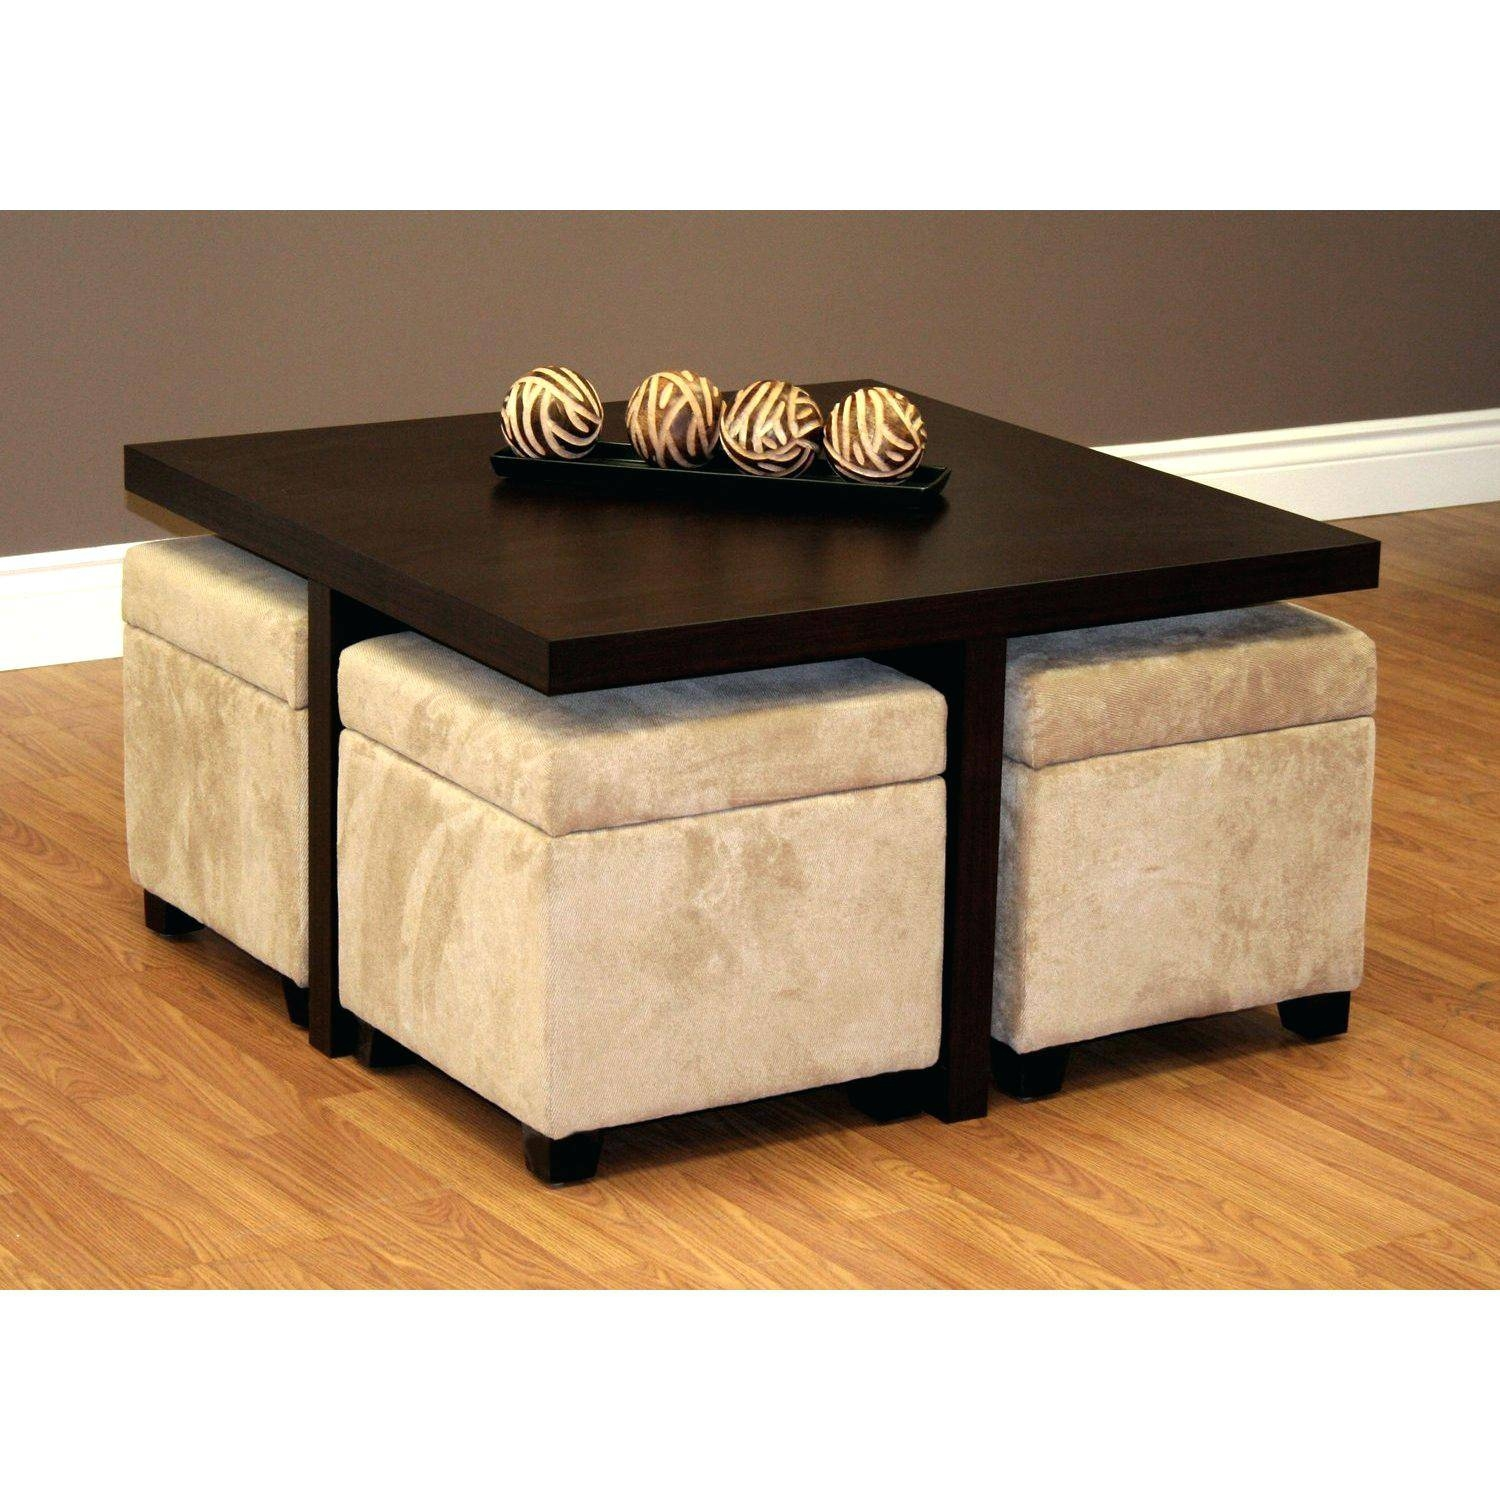 30 Inspirations of Black Coffee Tables With Storage